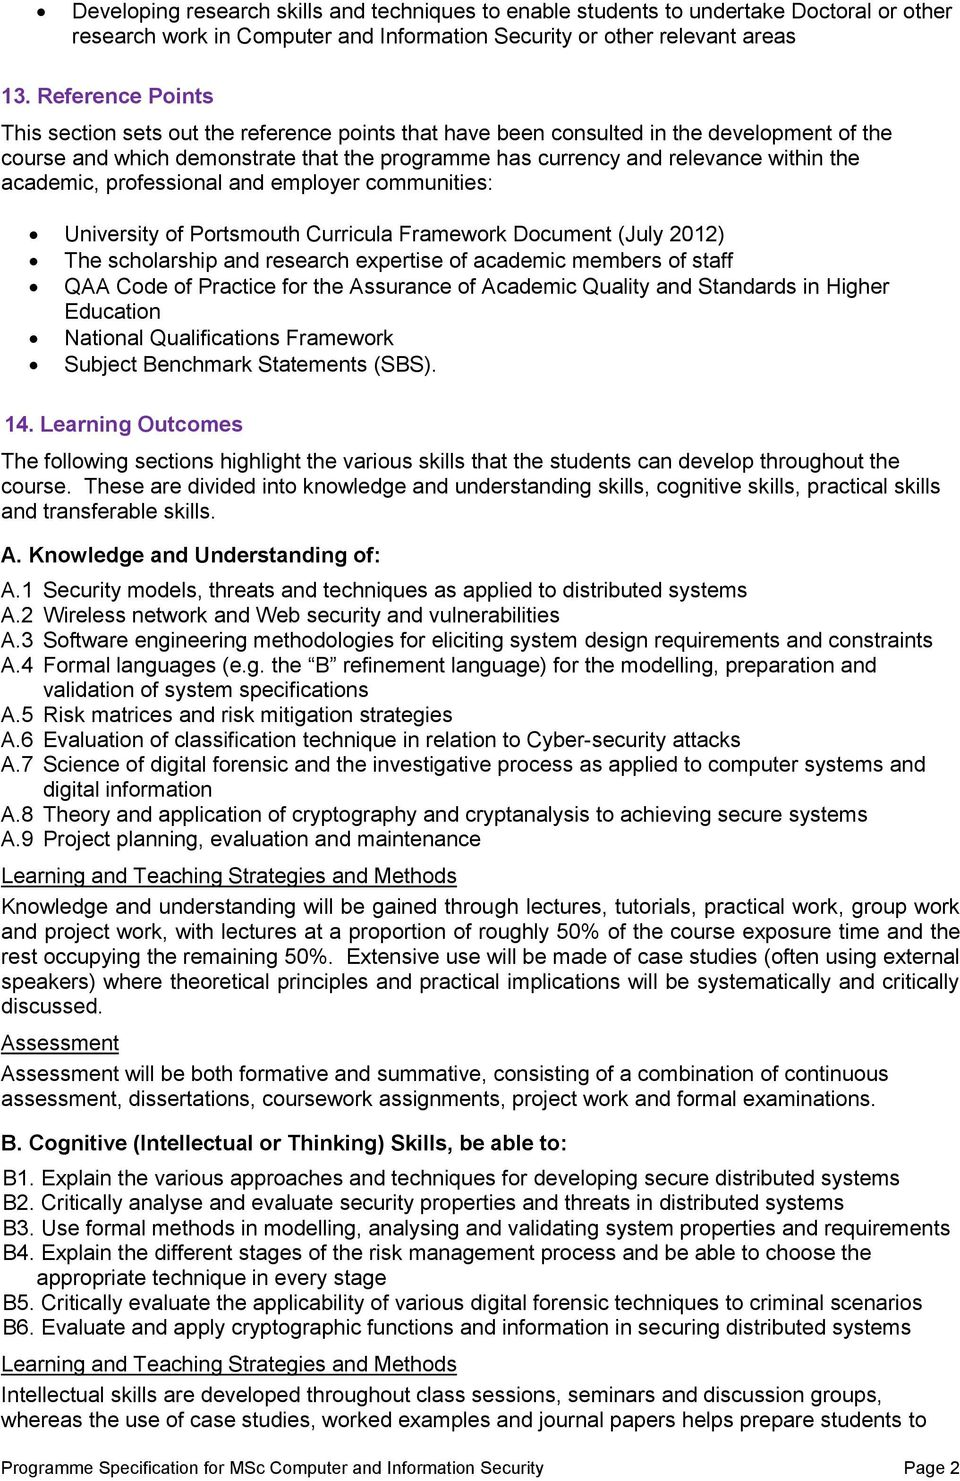 academic, professional and employer communities: University of Portsmouth Curricula Framework Document (July 2012) The scholarship and research expertise of academic members of staff QAA Code of